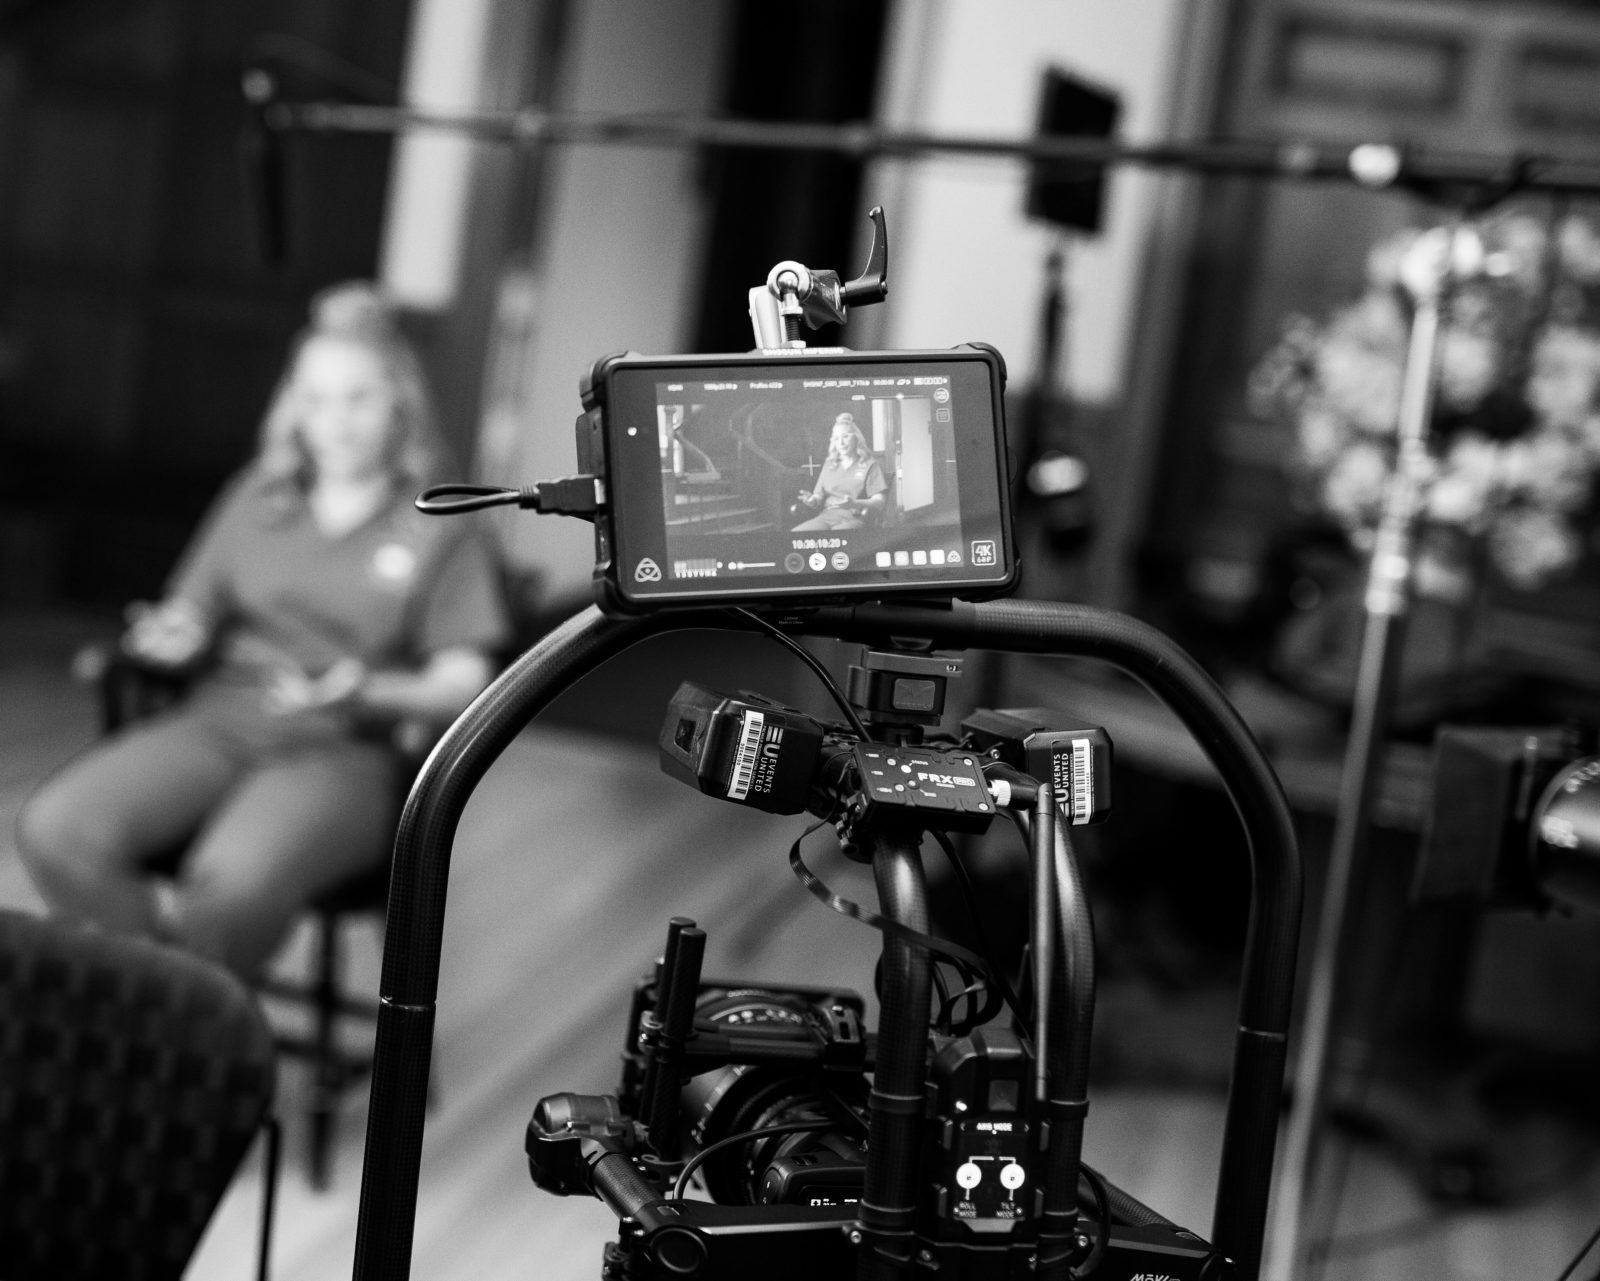 Boston Based Video Makers Discuss the Creative Process